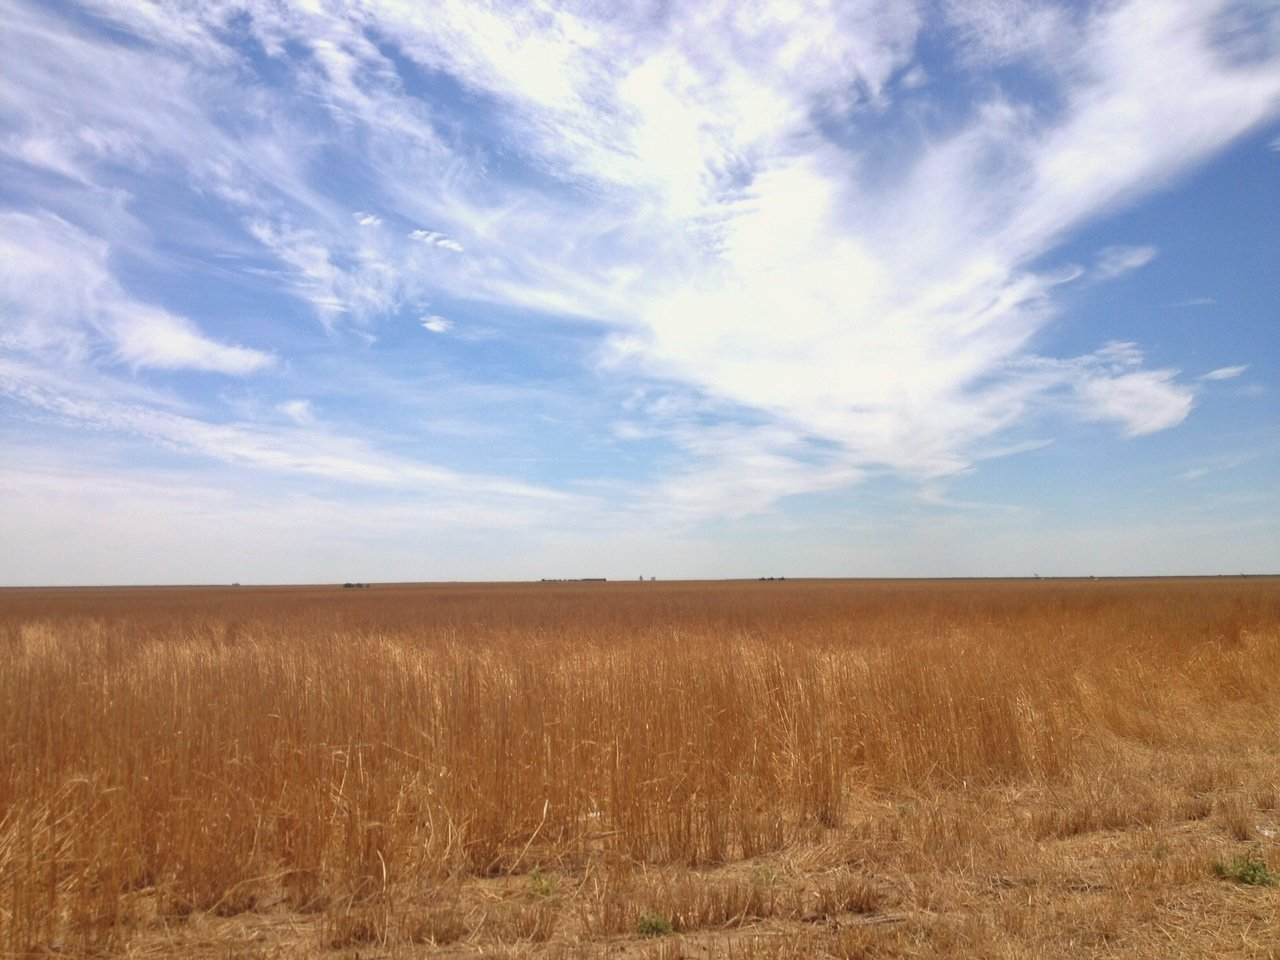 Wheat field, Logan County, Kansas (Photo by J. Schafer)